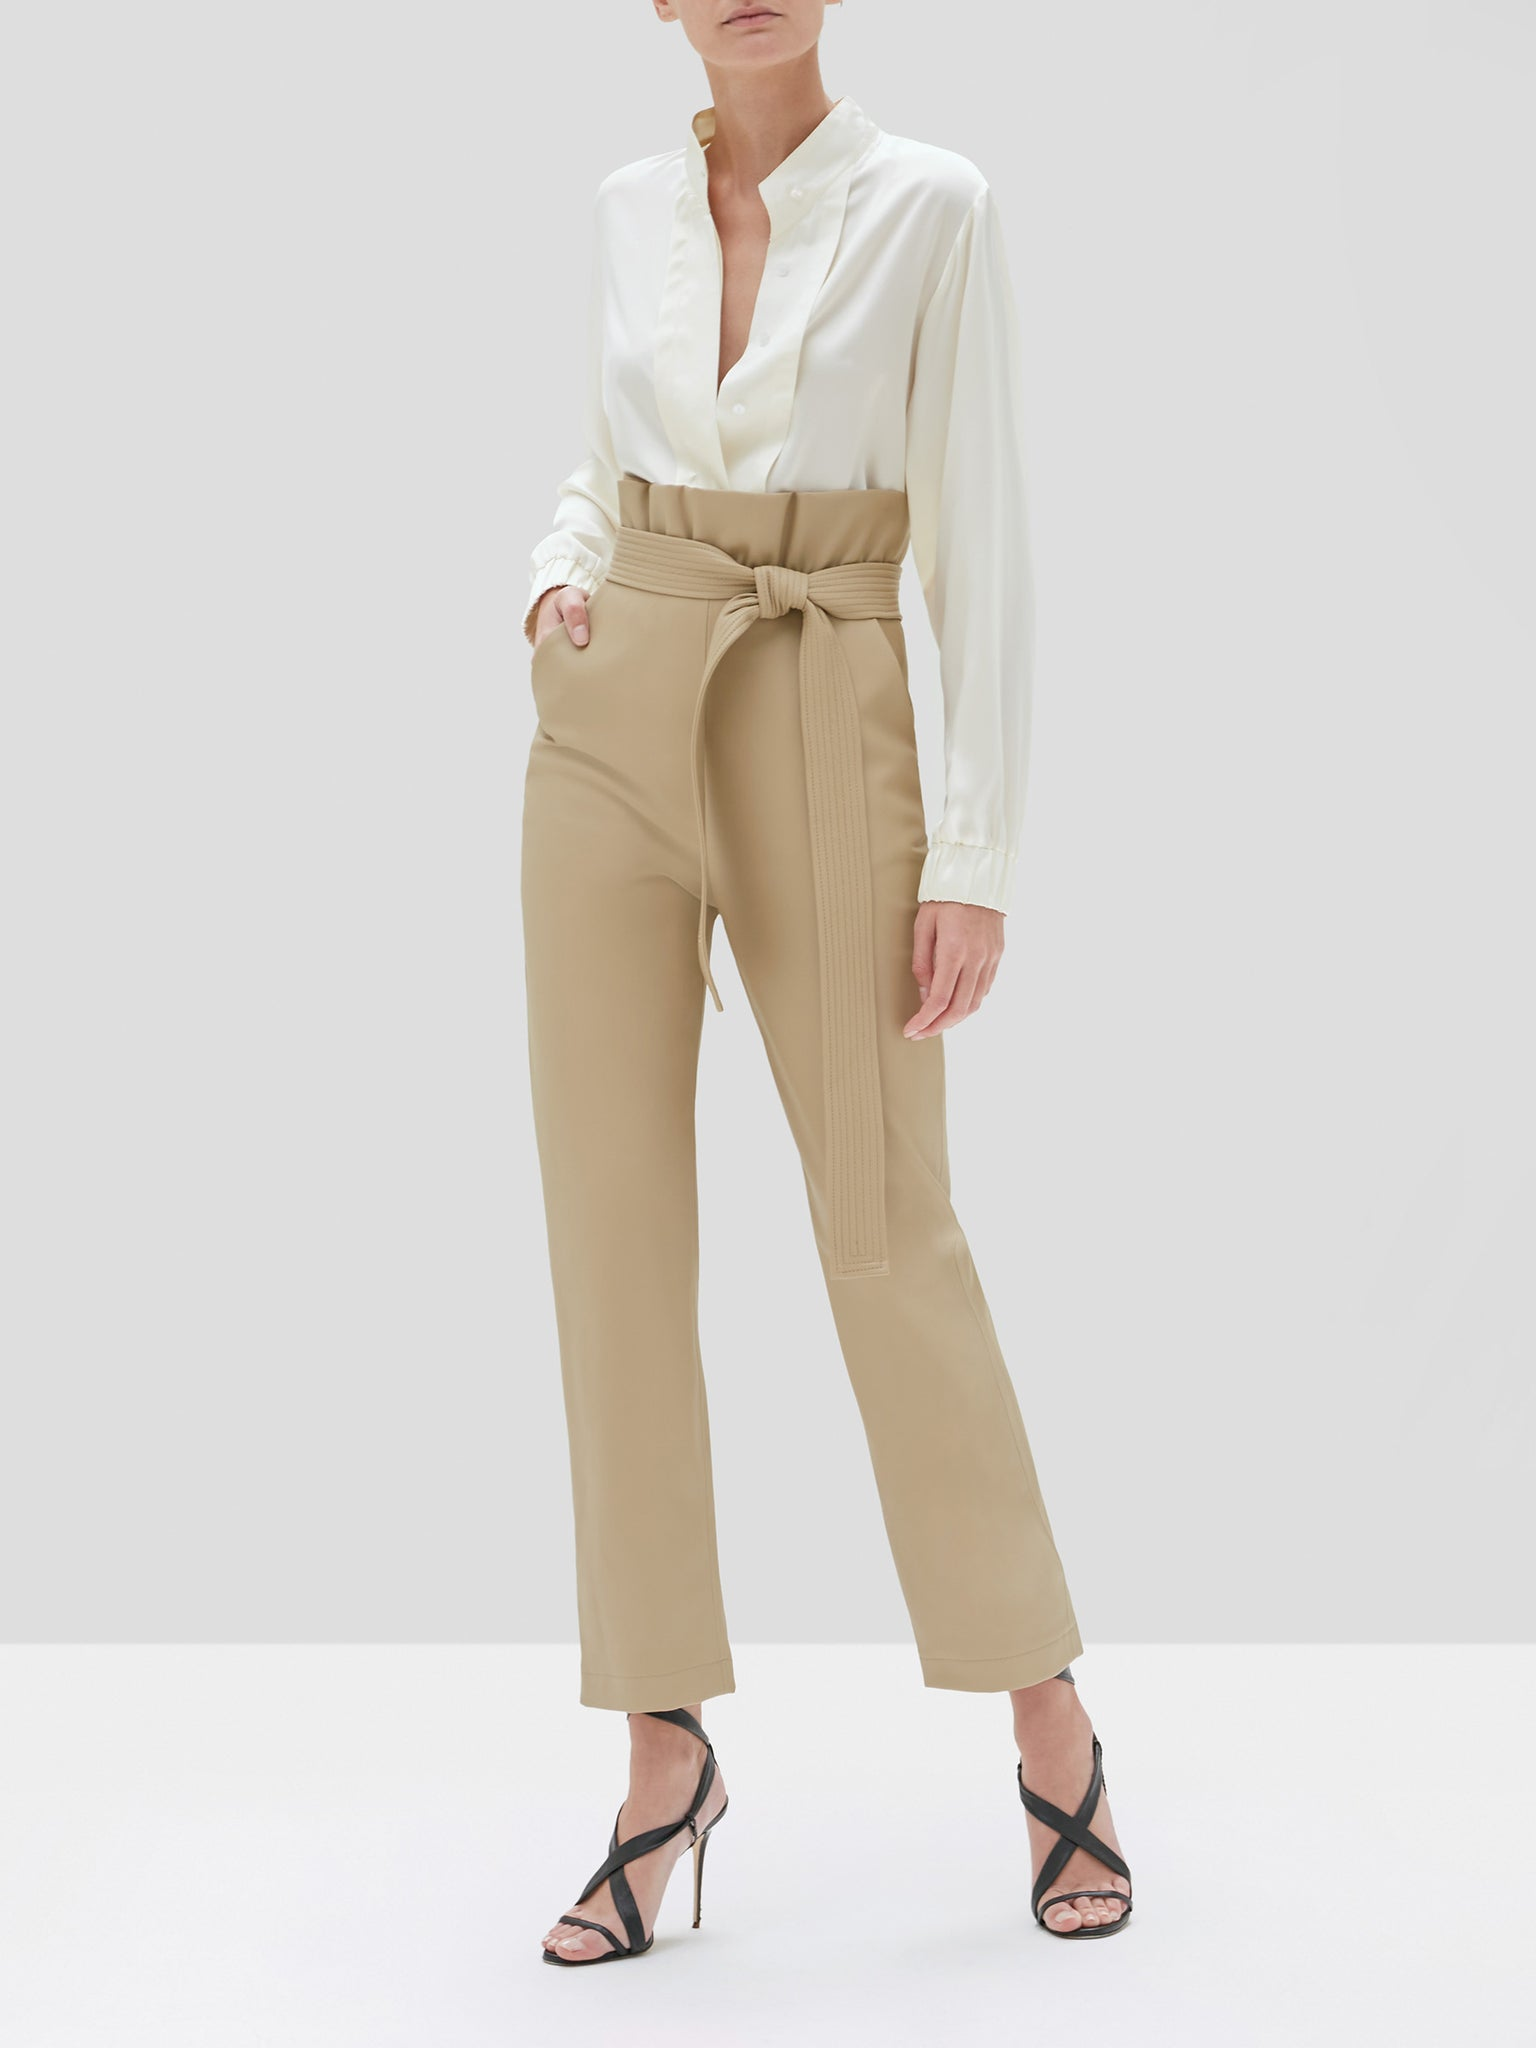 Kayden pant in taupe